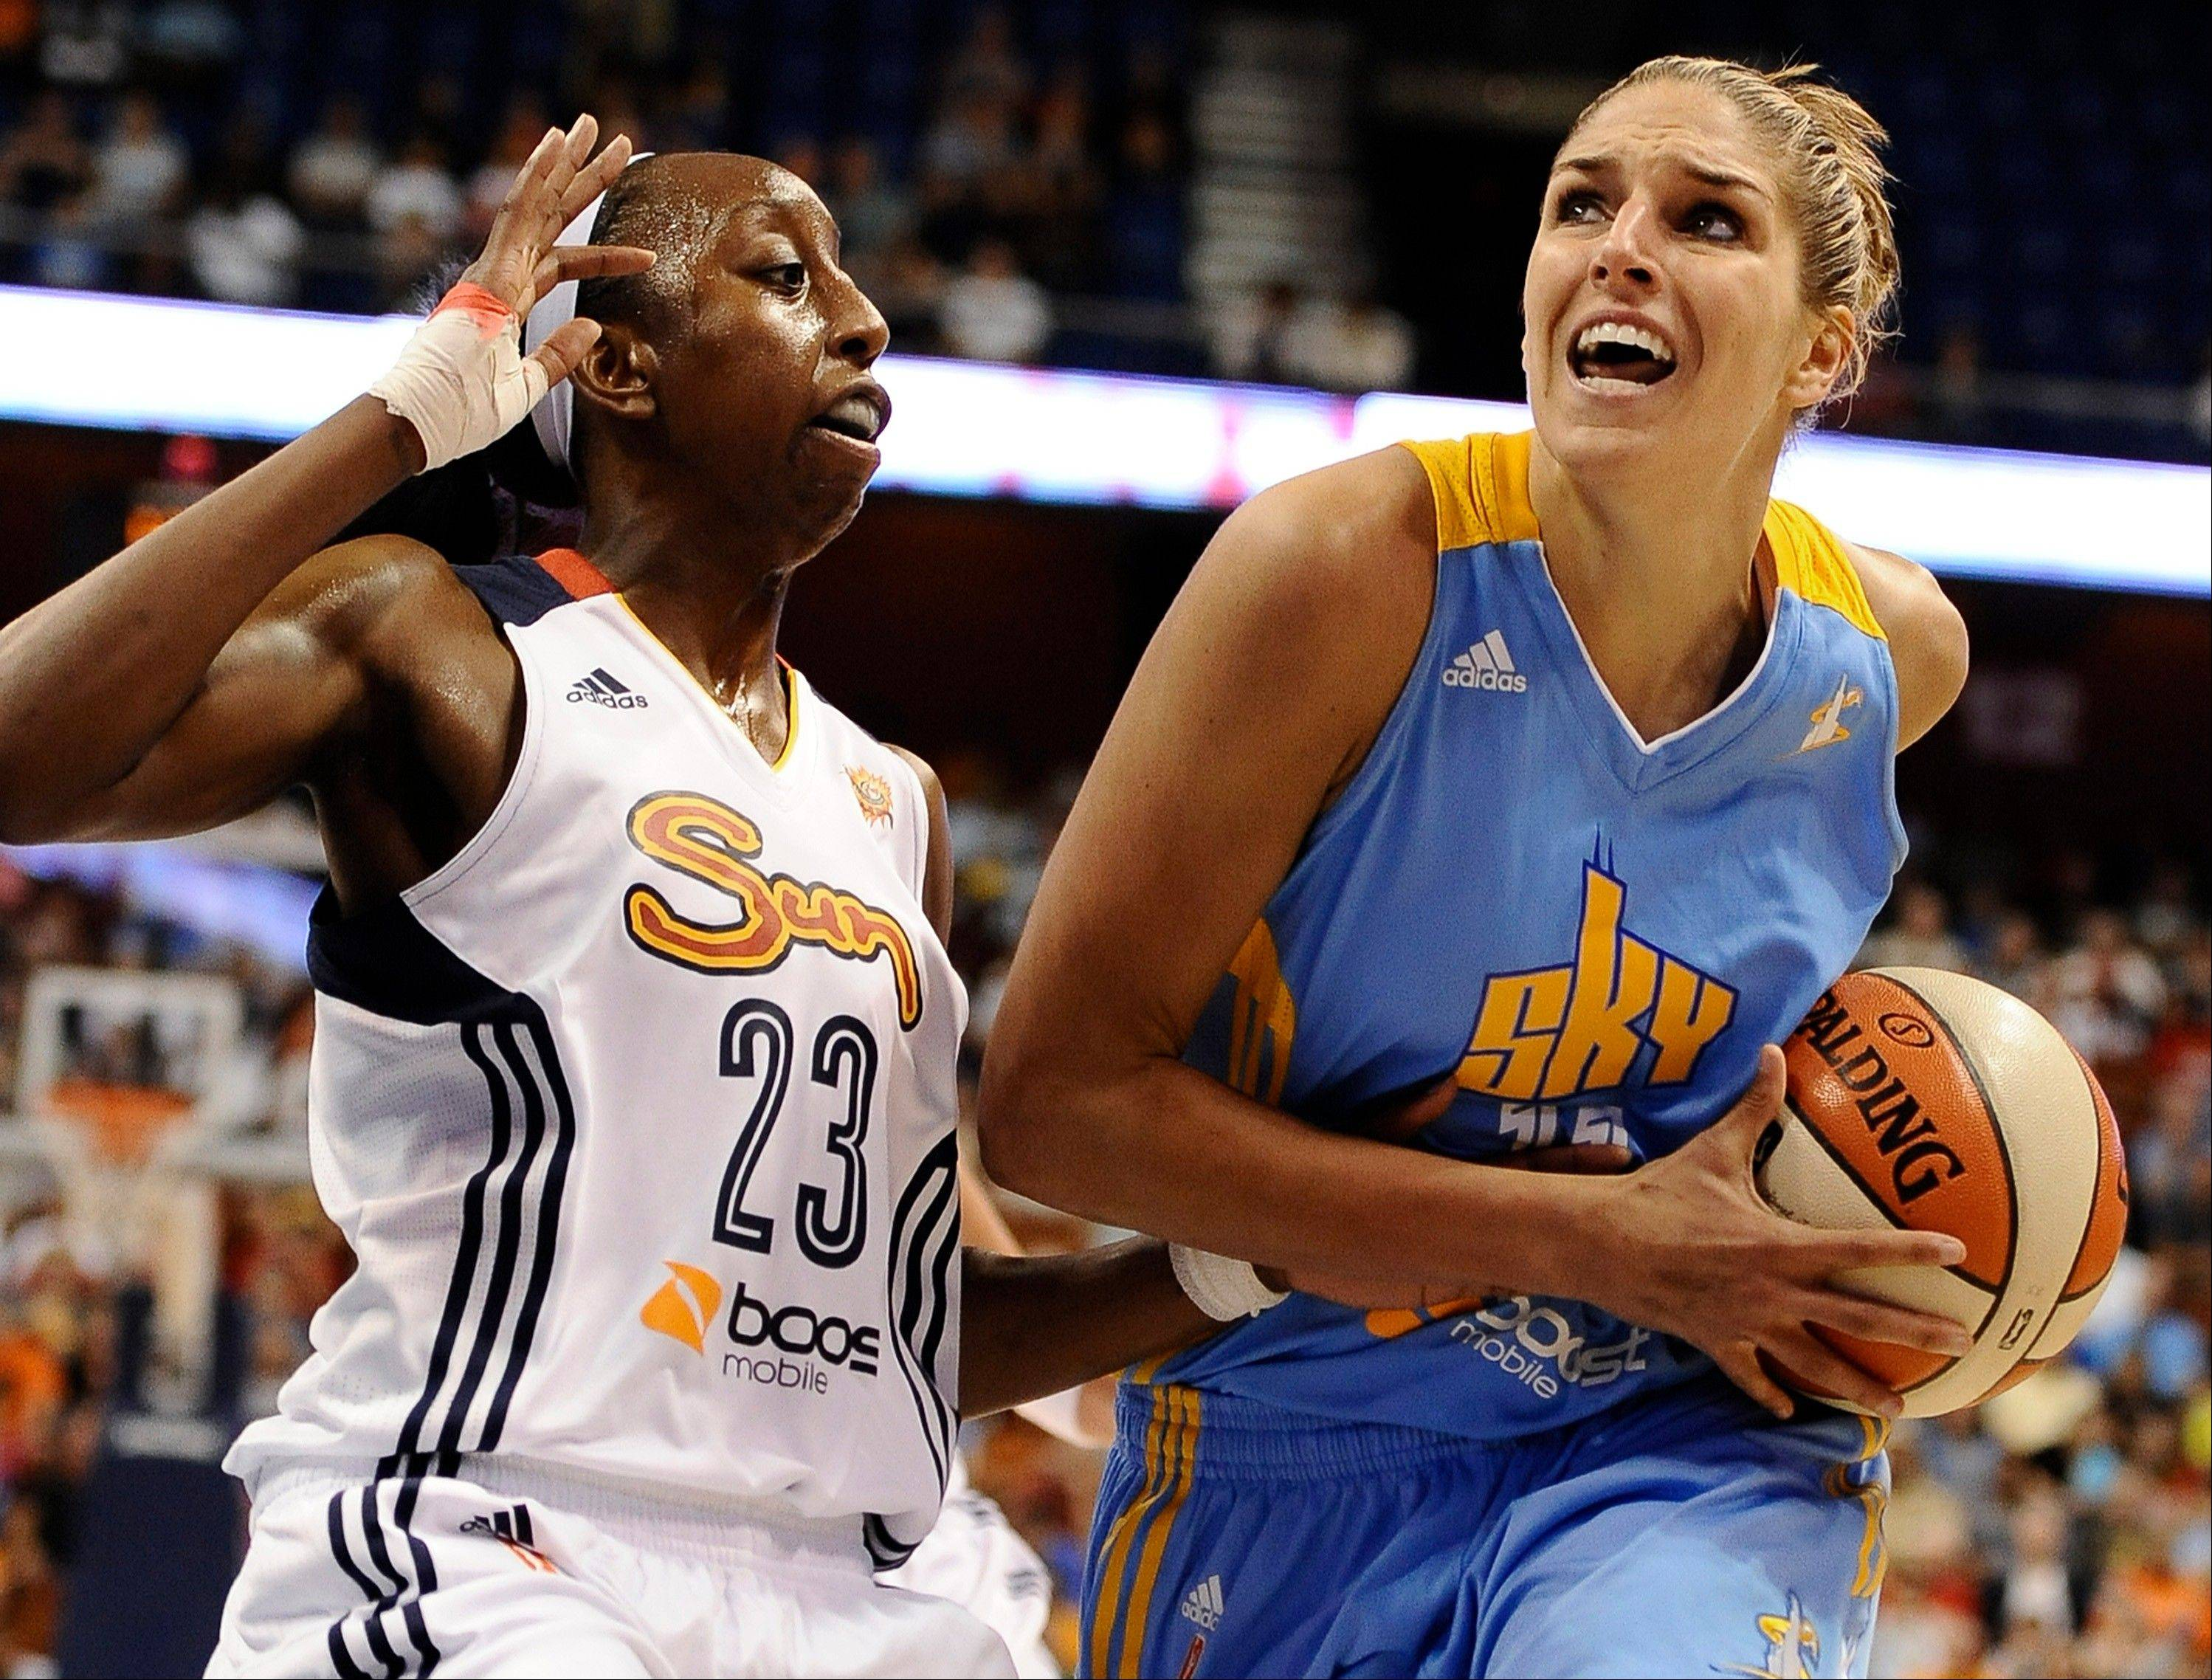 Chicago Sky's Elena Delle Donne, right, drives to the basket while being guarded by Connecticut Sun's Allison Hightower during the first half of a WNBA basketball game in Uncasville, Conn., Friday, July 12, 2013. (AP Photo/Jessica Hill)